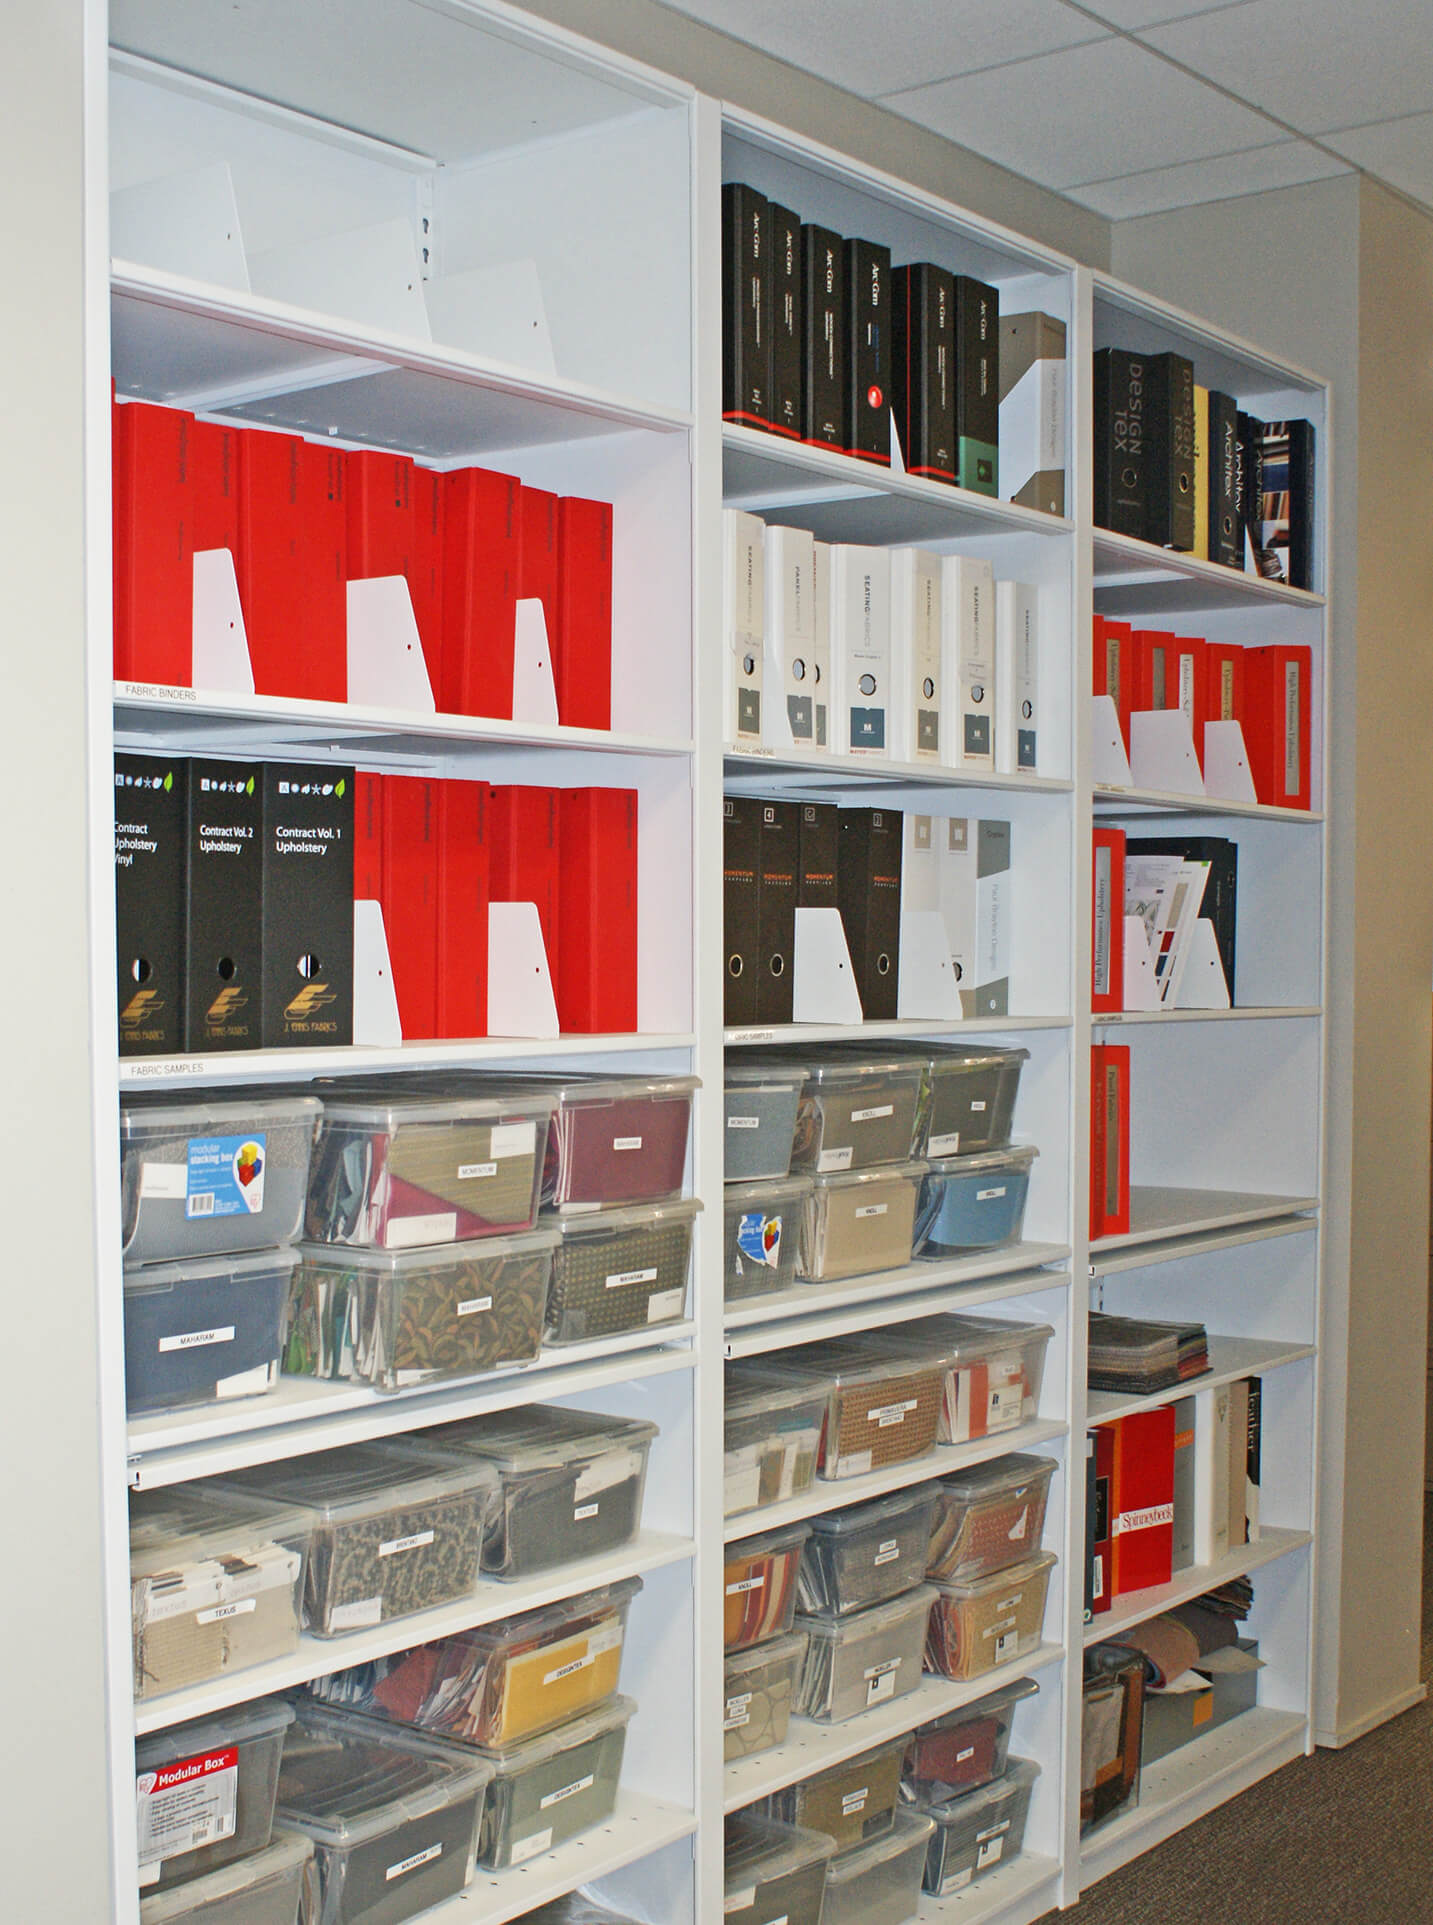 Toronto Interior Design Company reference material on 4-Post shelving with pull-out reference shelves